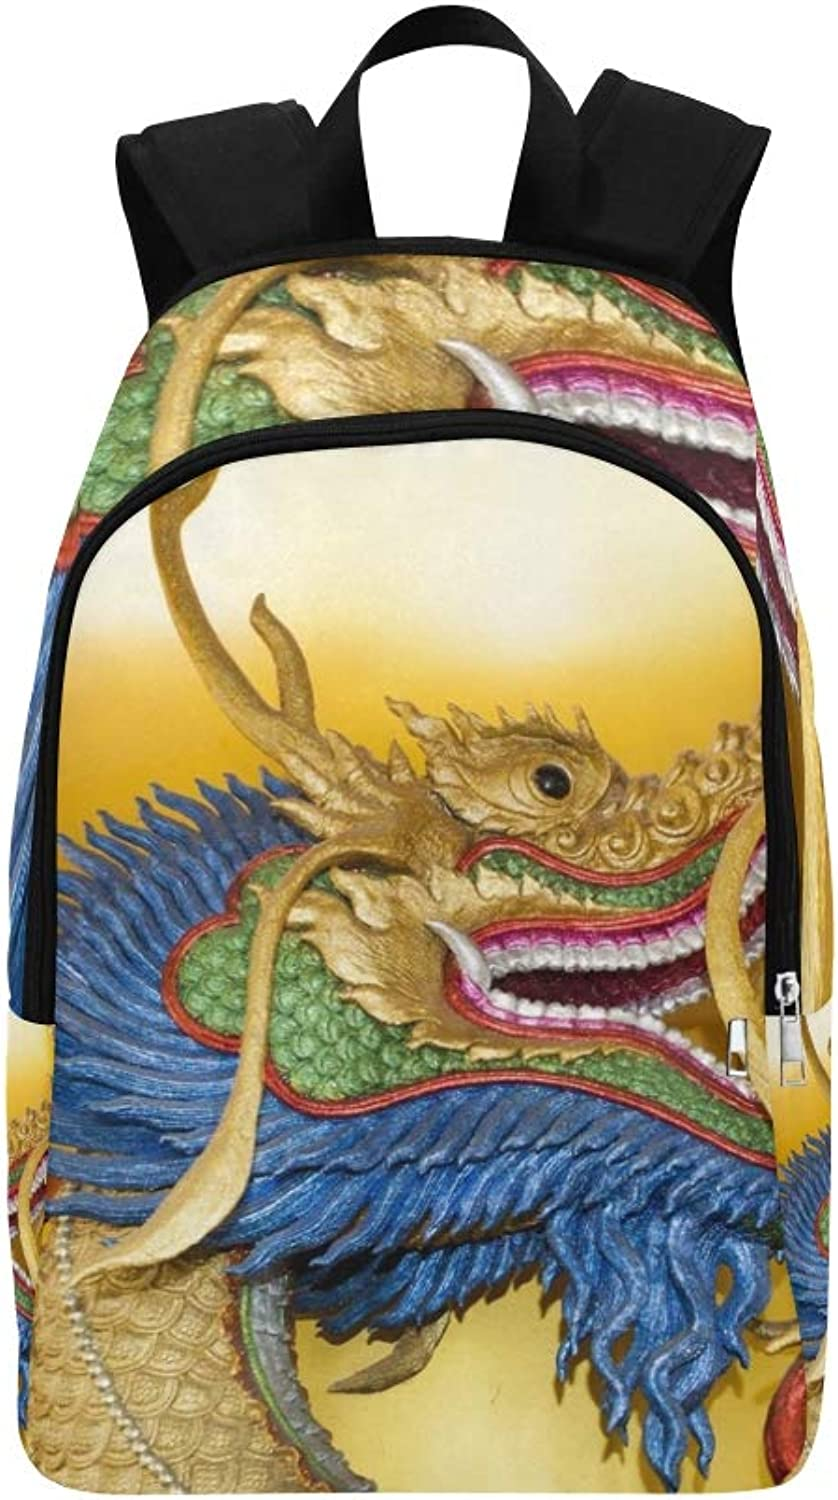 Dragon Head Sculpture On Wall Temple Casual Daypack Travel Bag College School Backpack for Mens and Women